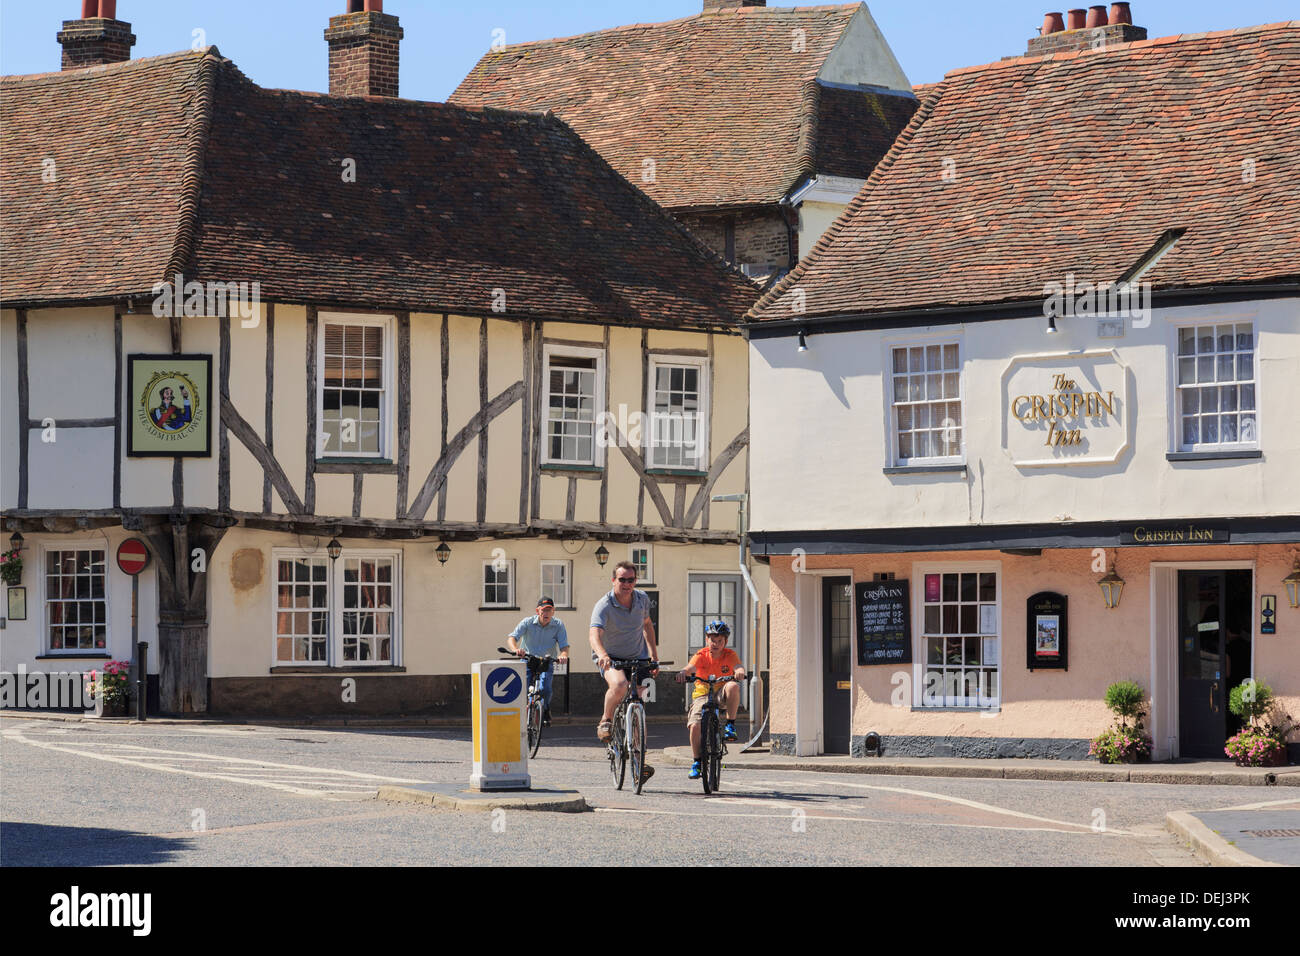 People cycling past 15th century Admiral Owen pub and 16th century Crispin Inn in historic Cinque Port town of Sandwich, Kent, England, UK, Britain - Stock Image